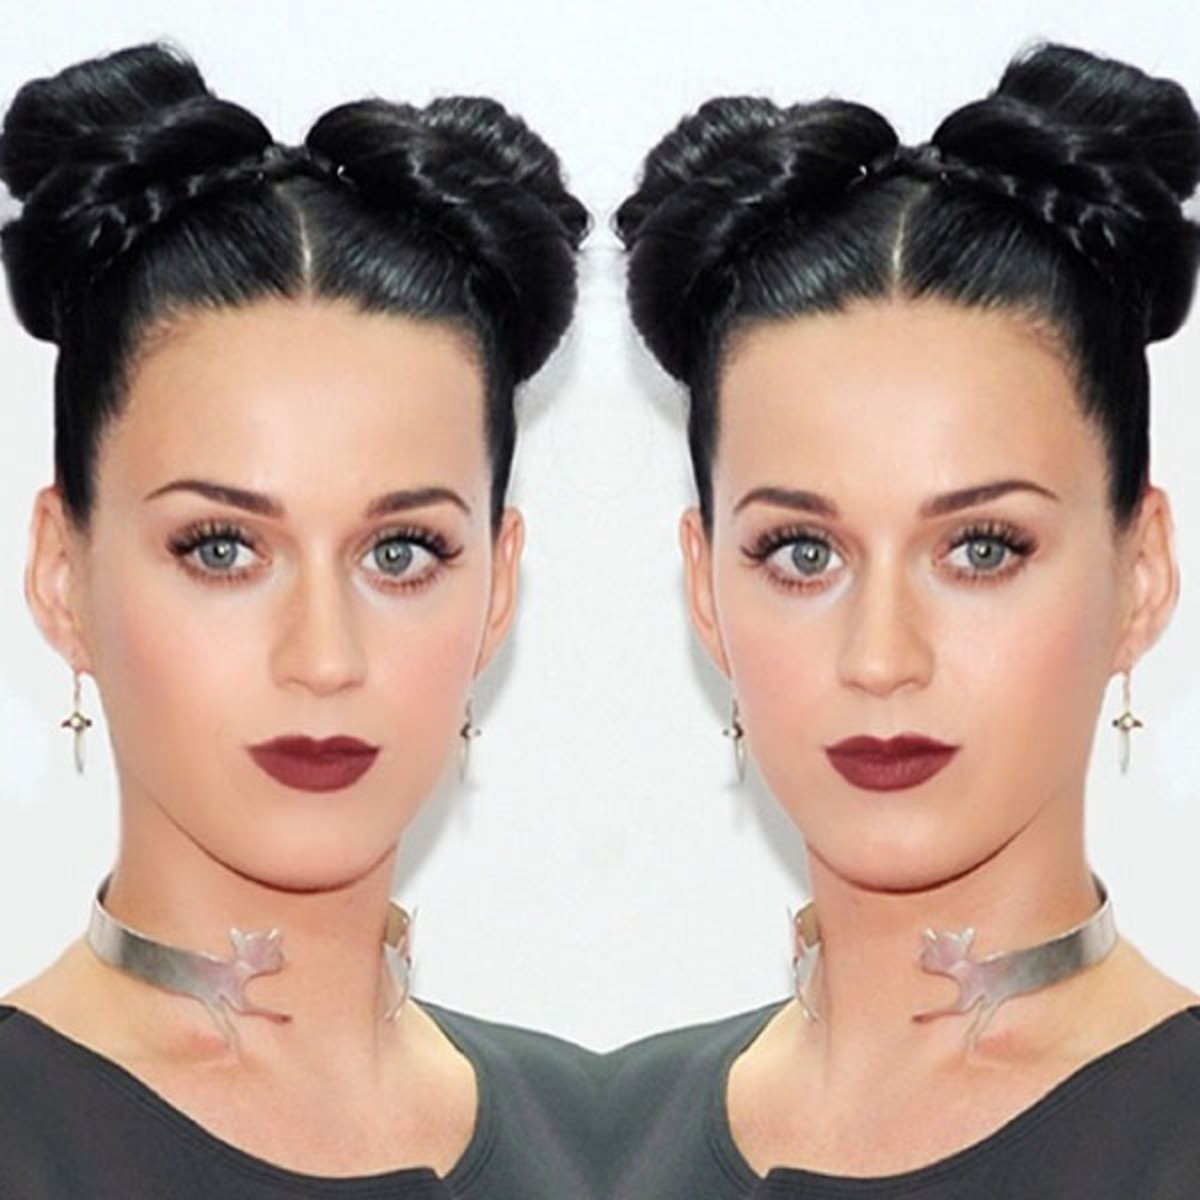 Katy Perry hair by Jen Atkin